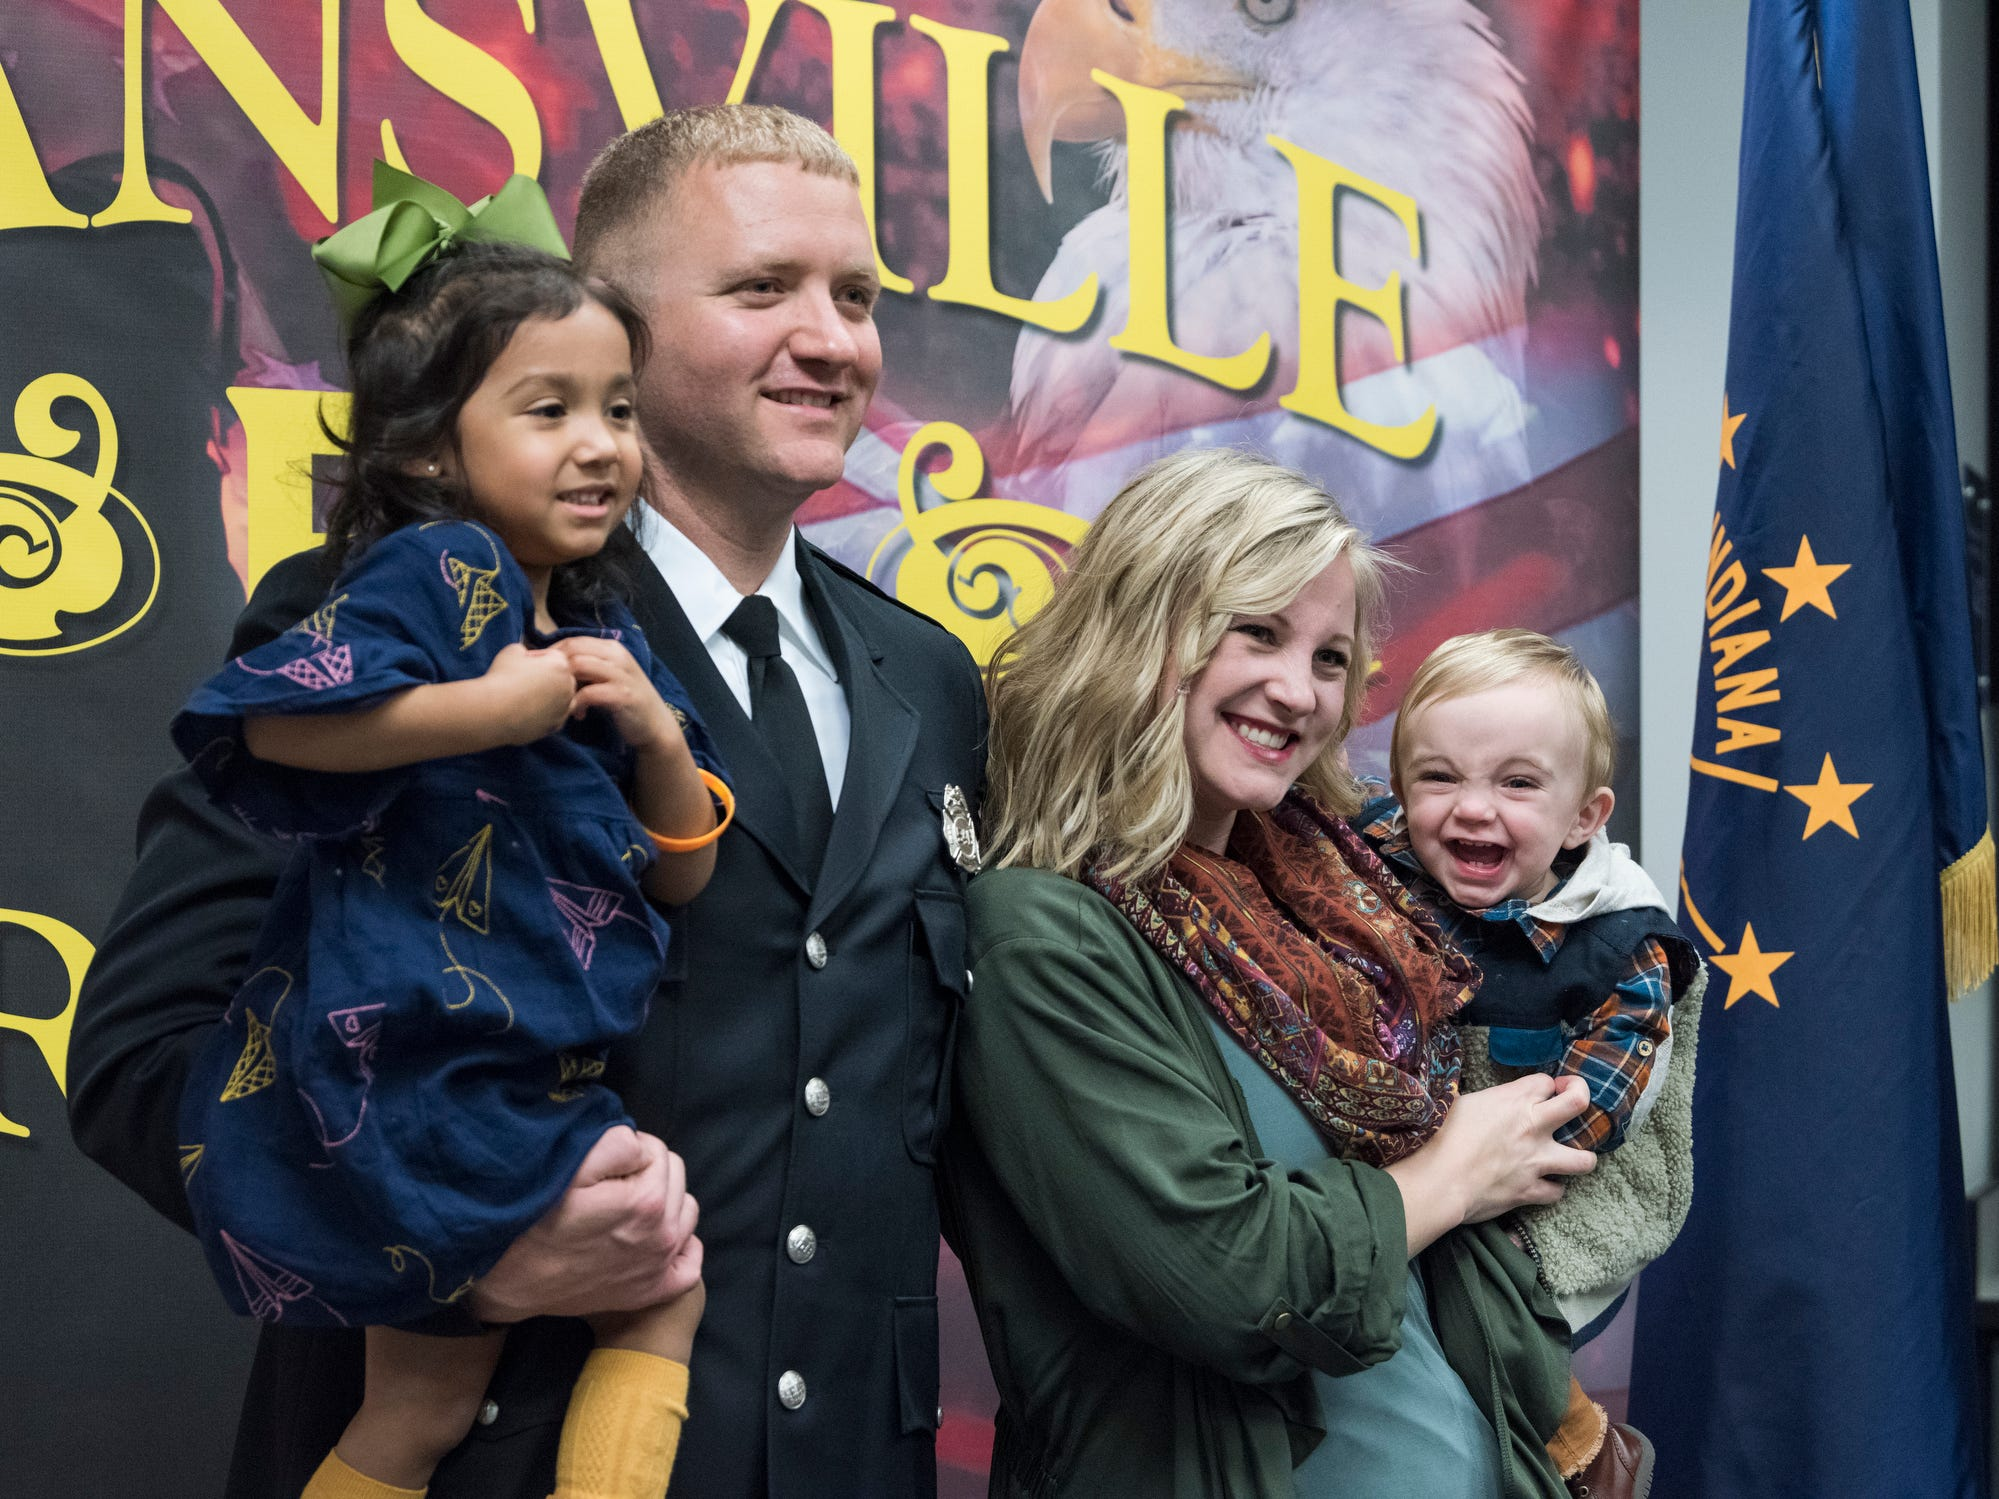 Michael Wilson poses for pictures with his wife and their children three-year-old Gracelyn, 3, and 10-month-old Elijah after his firefighter graduation ceremony at American Red Cross Headquarters in Evansville, Ind., Friday, Oct. 12, 2018.